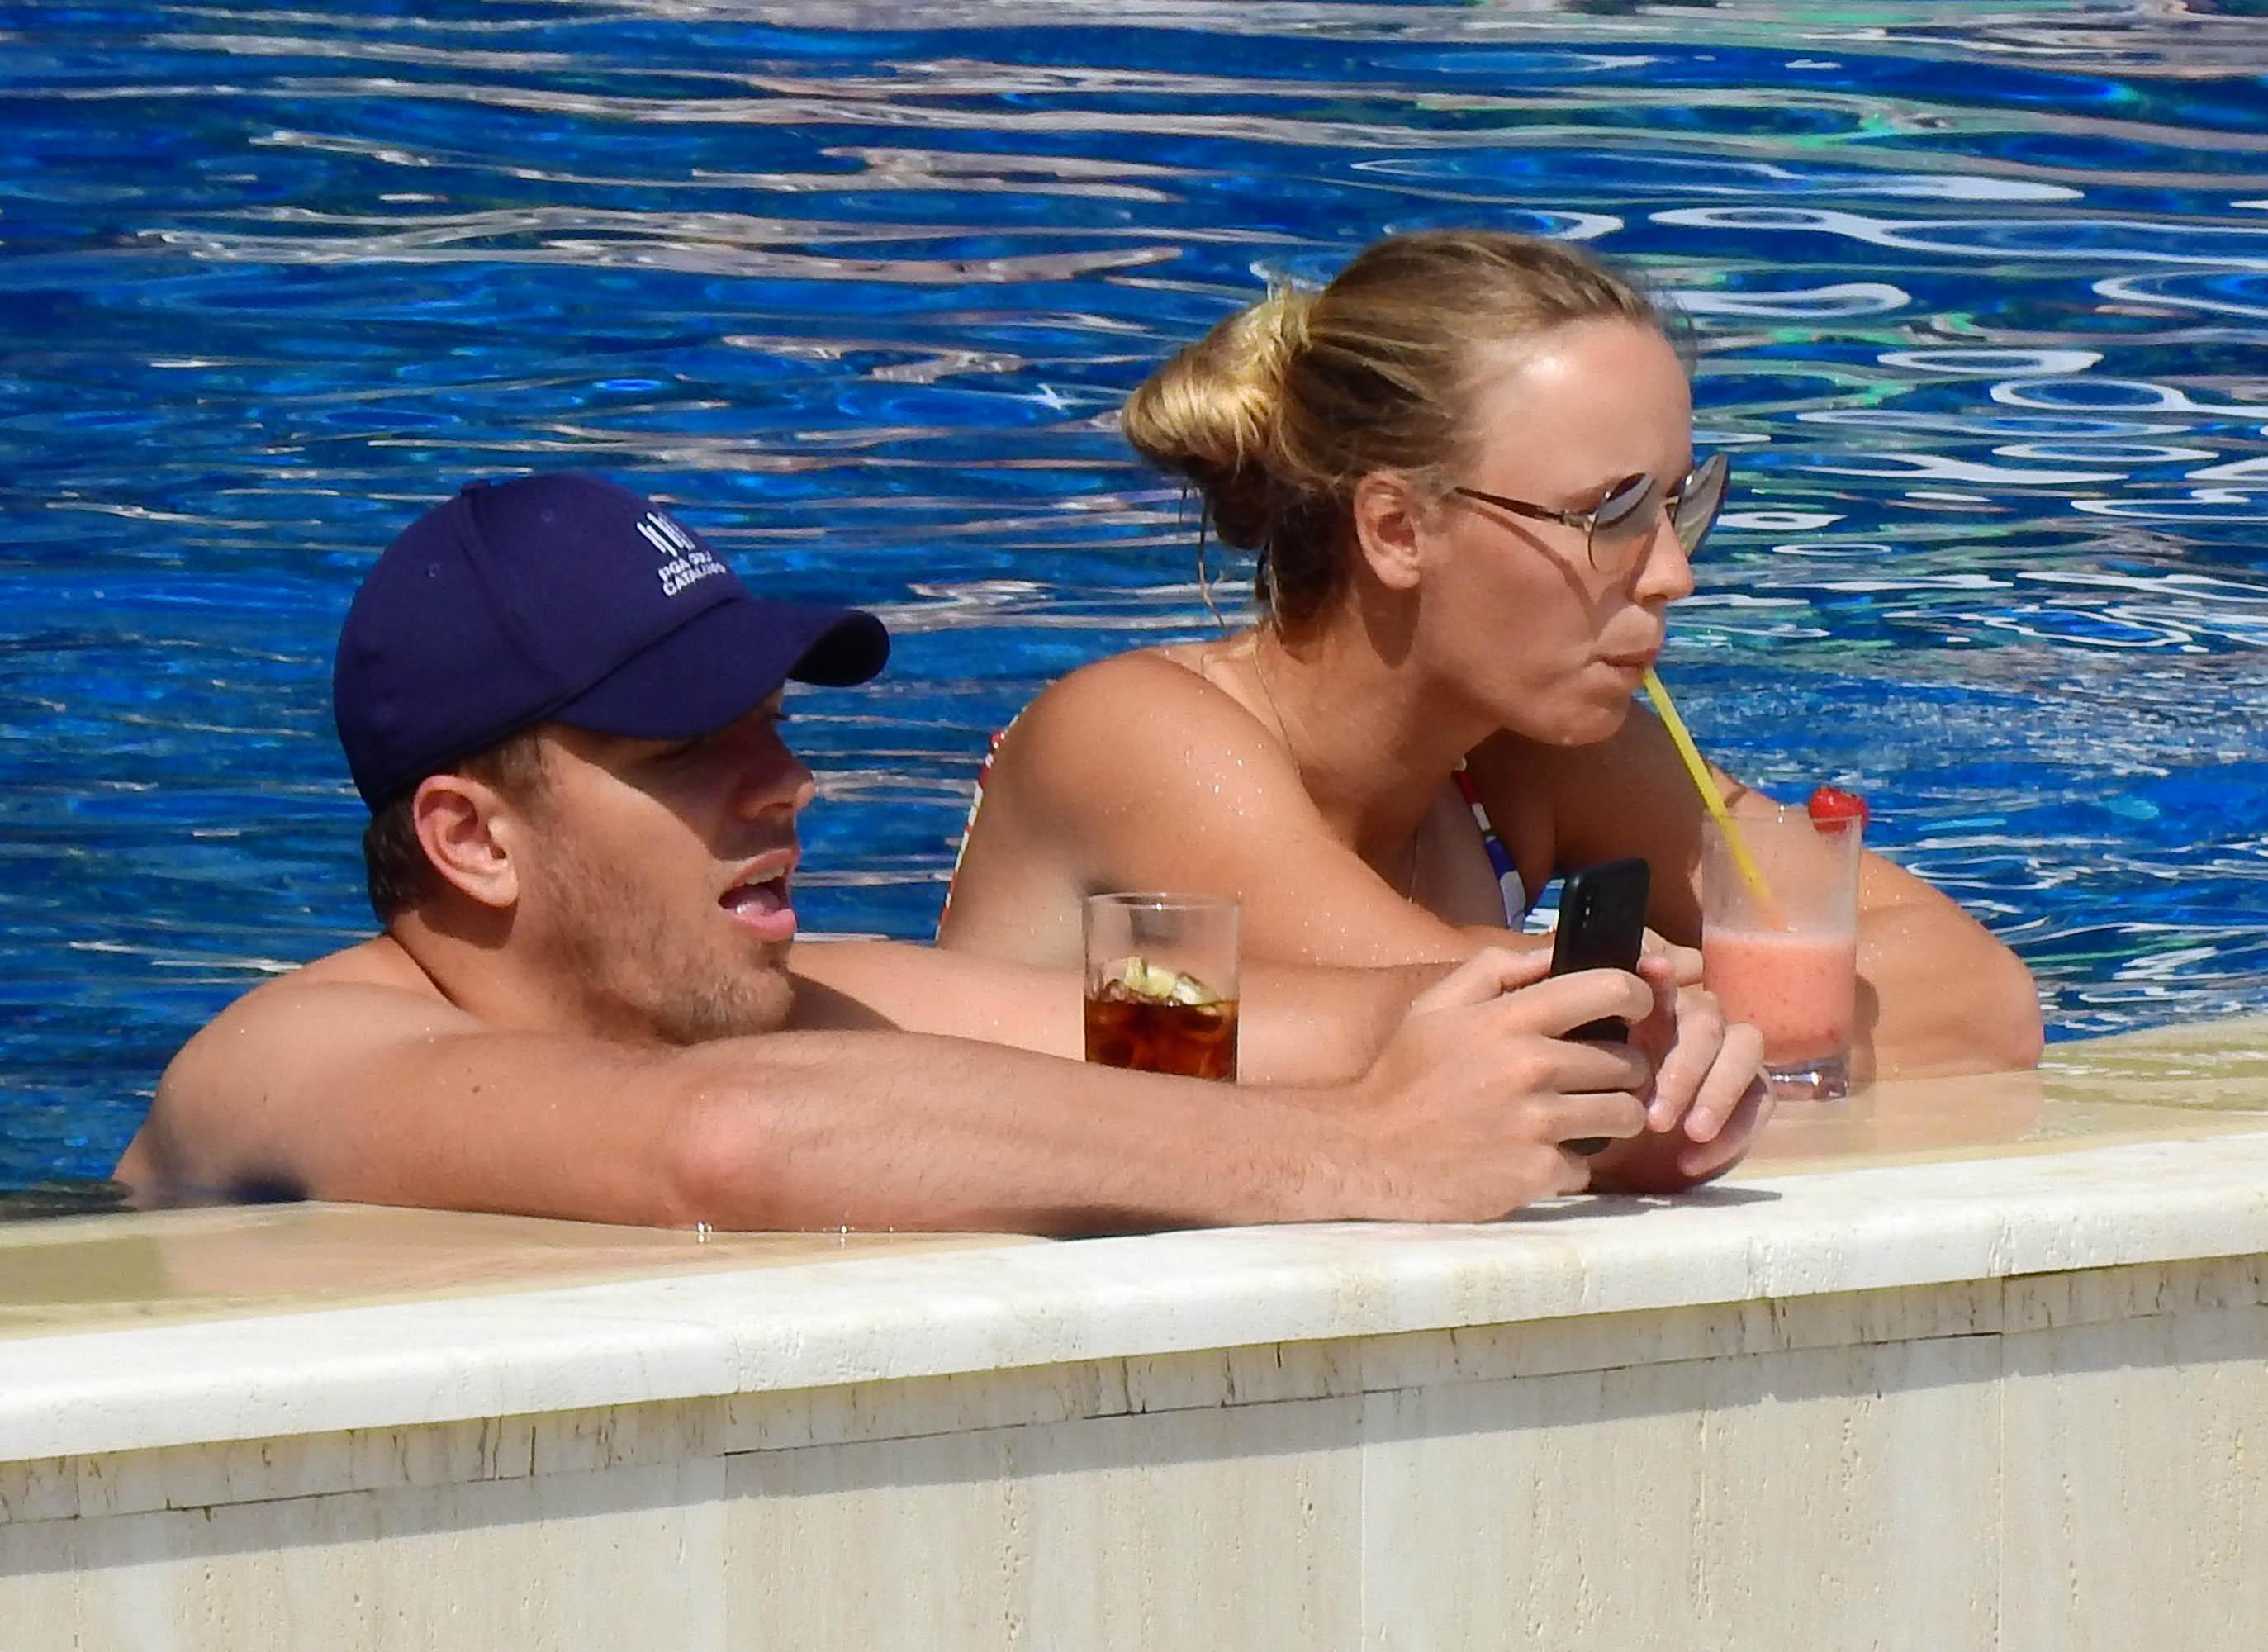 Wozniacki has been enjoying a relaxing holiday in Capri with fiance David Lee